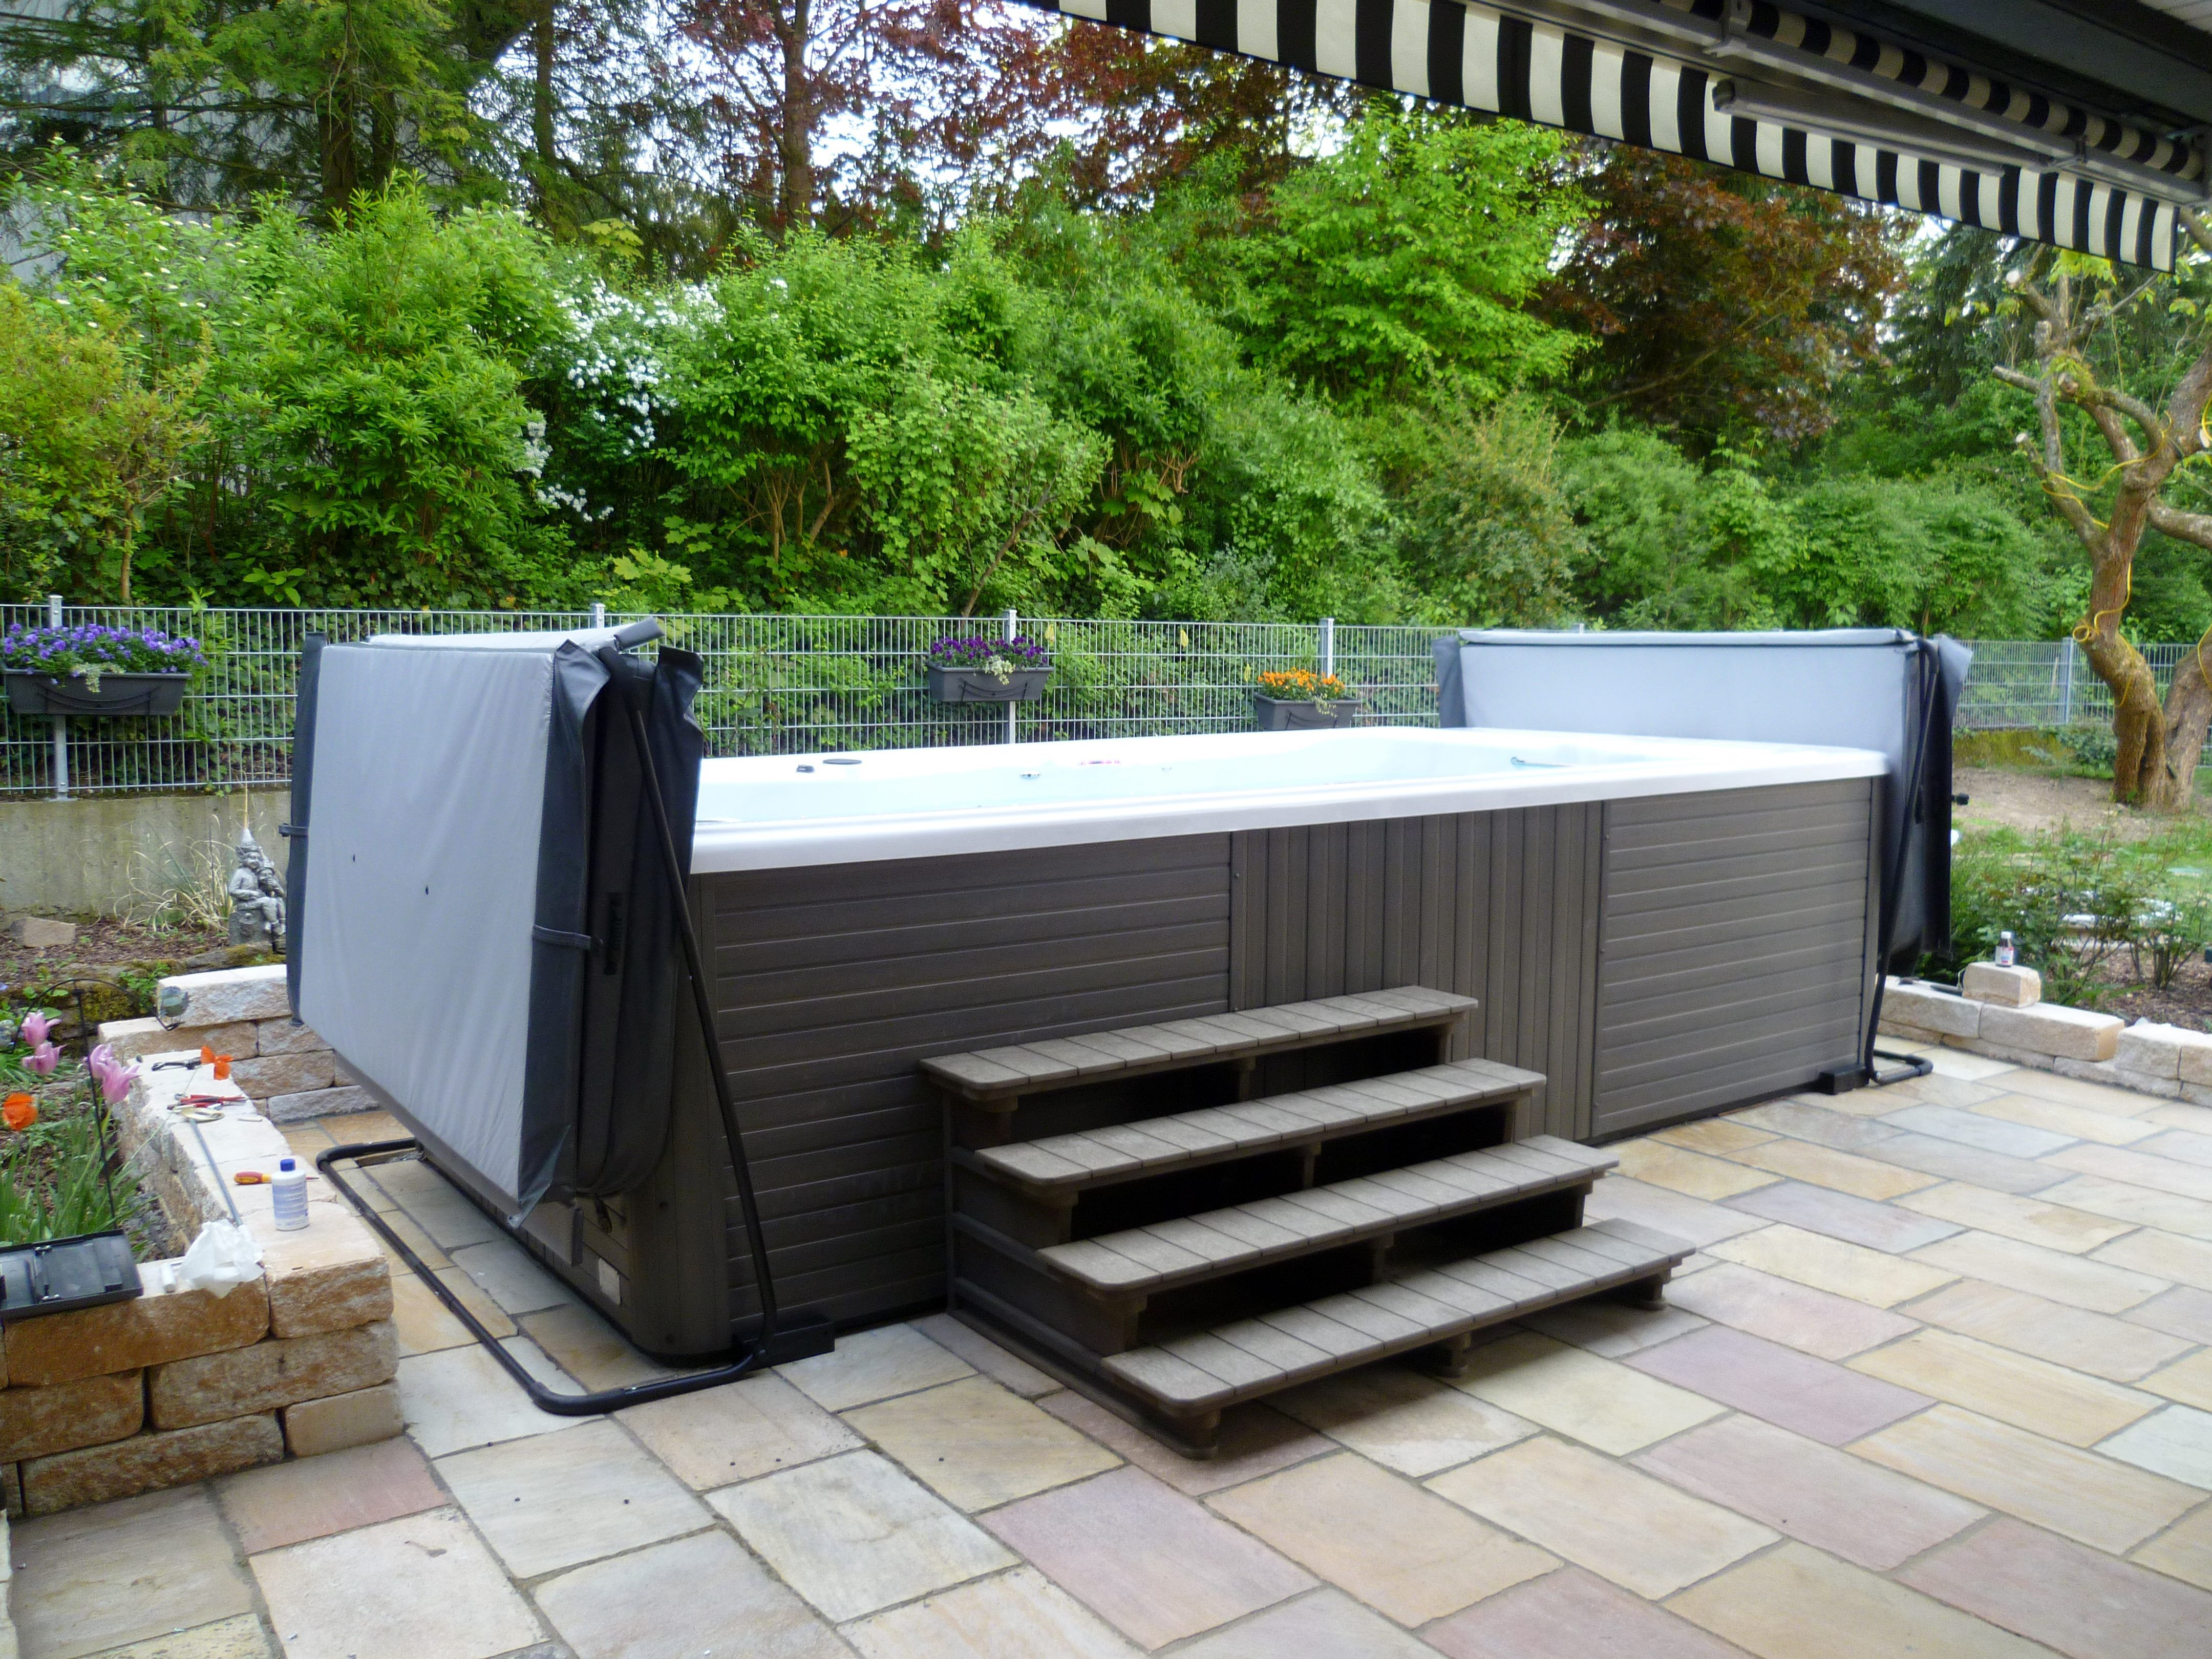 Michael Phelps Swimspa Huttub Installed With Hard Protective Covers Swimming Healthyliving Www Bayspas Co Uk Swim Spa Outdoor Swim Spa Swim Spa Landscaping